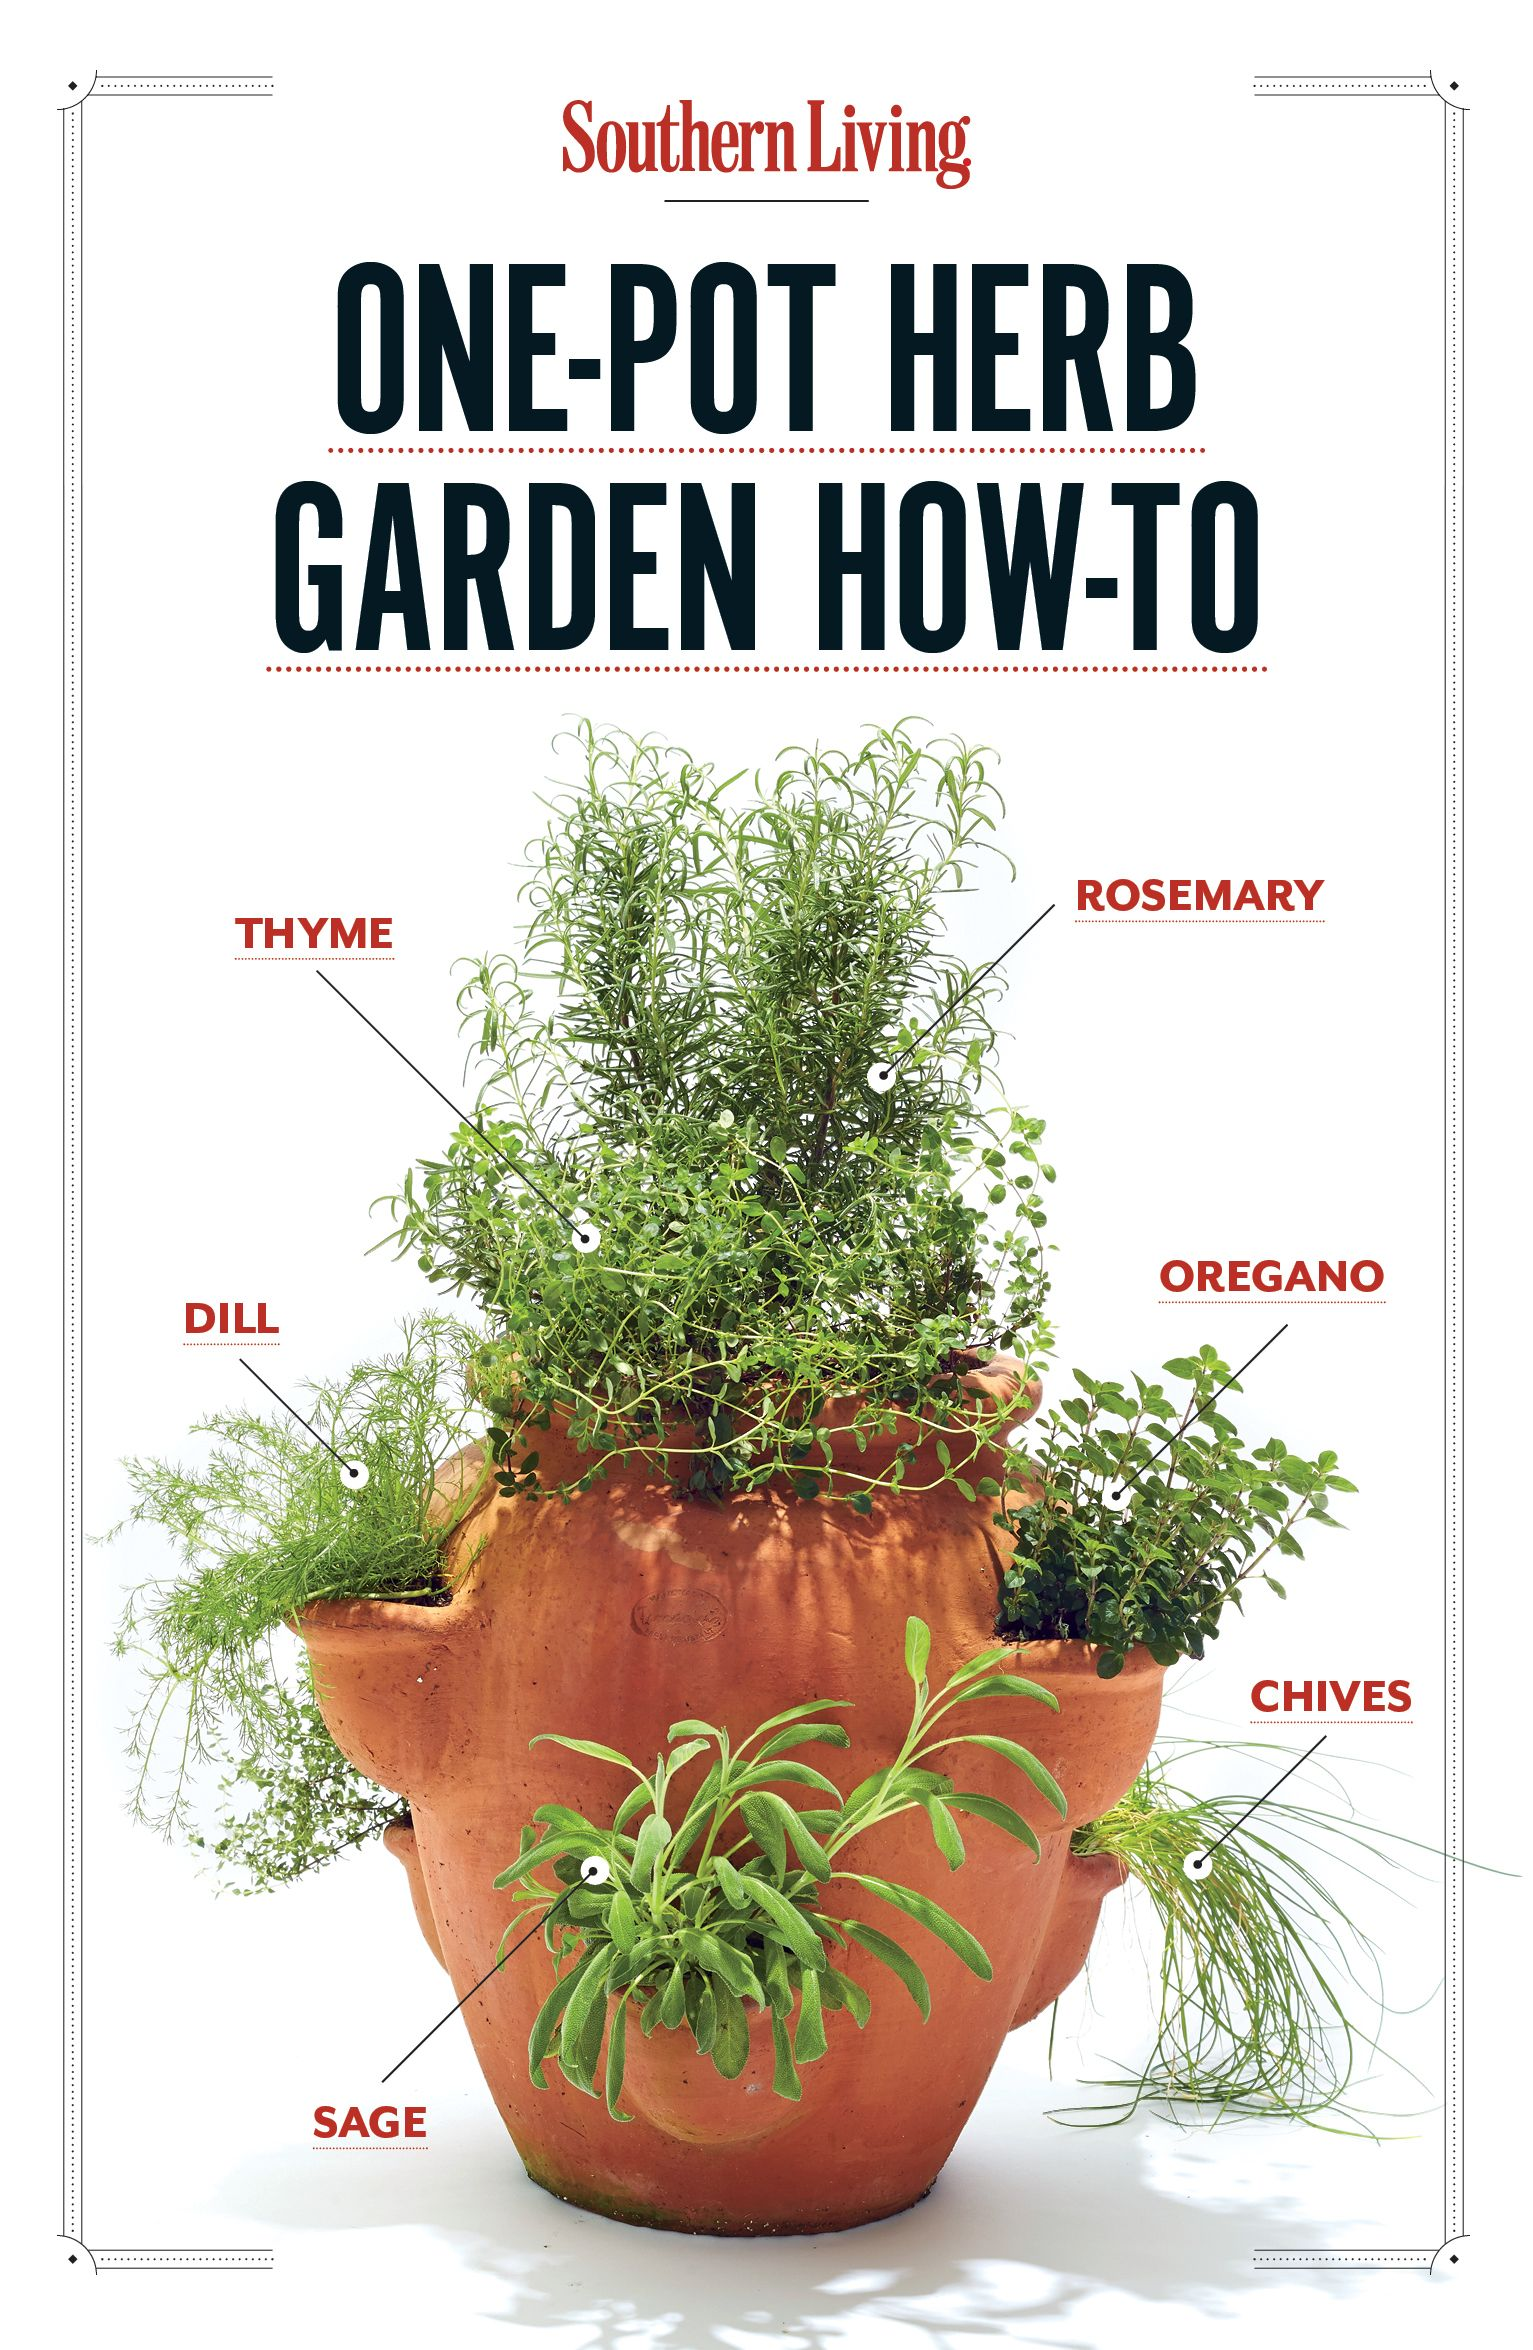 How To Grow Your Own One P*T Herb Garden Vegetable 640 x 480